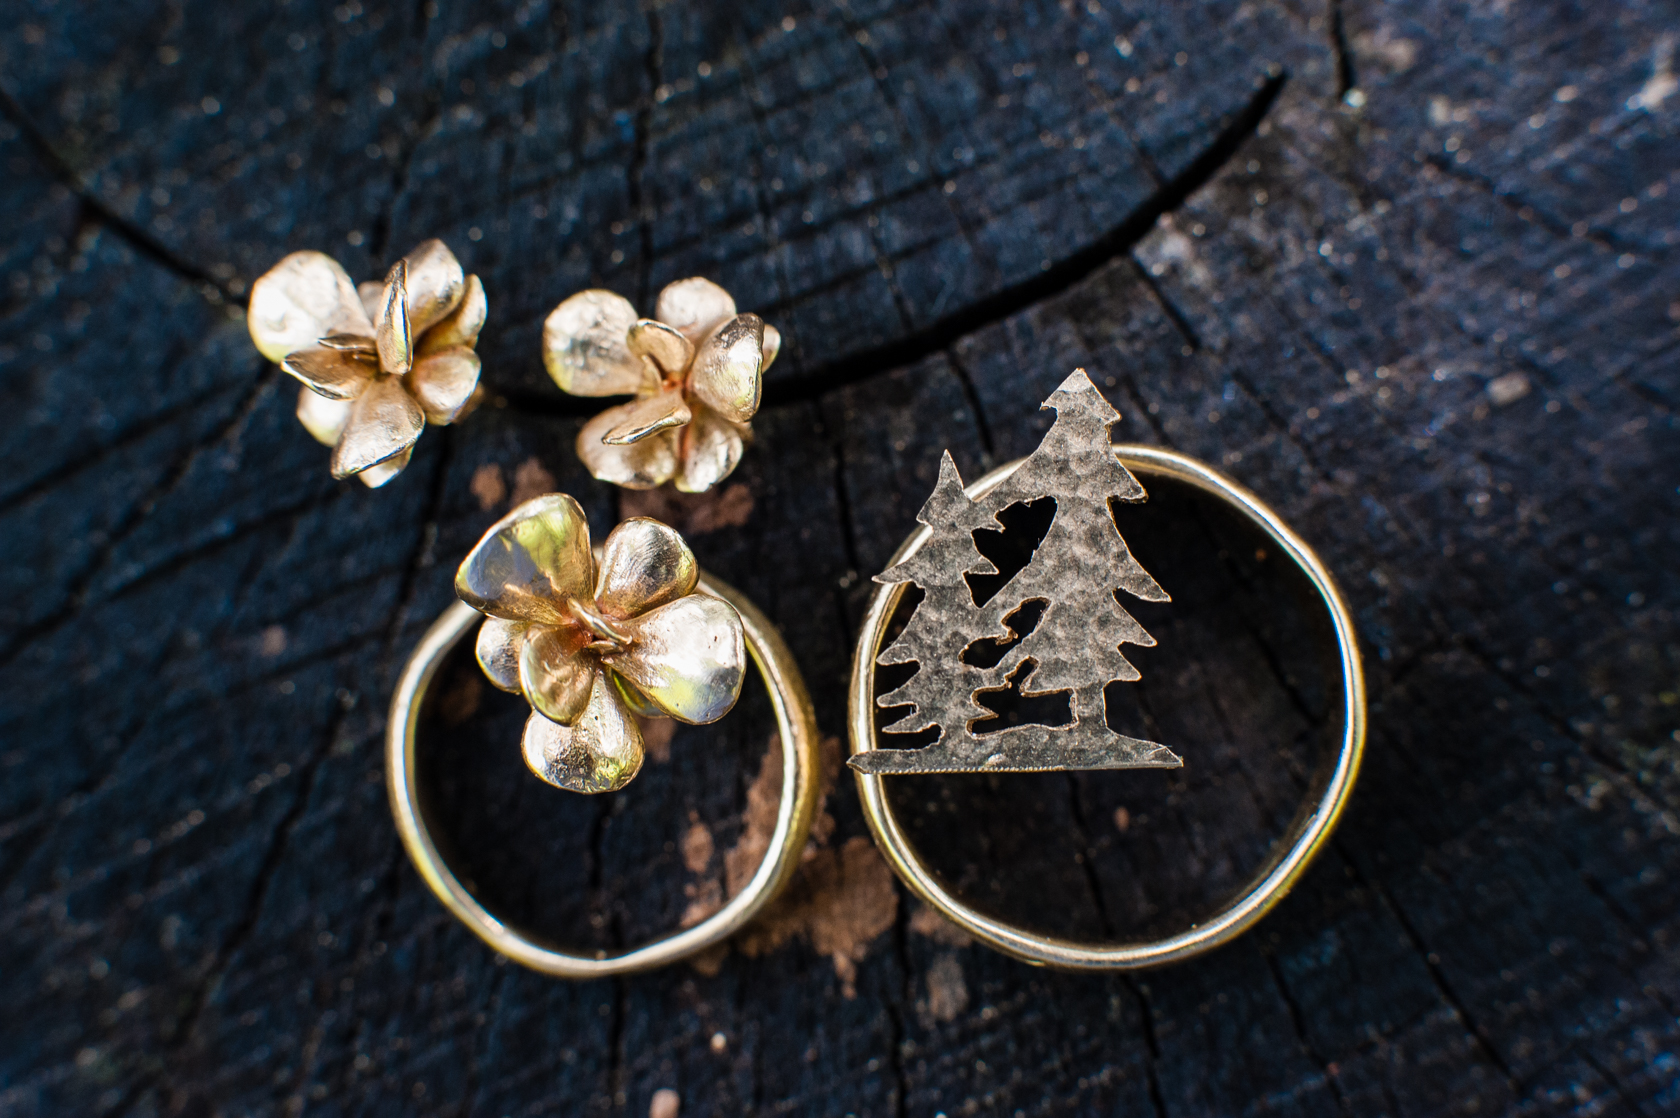 Gorgeous gold earings with matching wedding bands made by a very creative bride